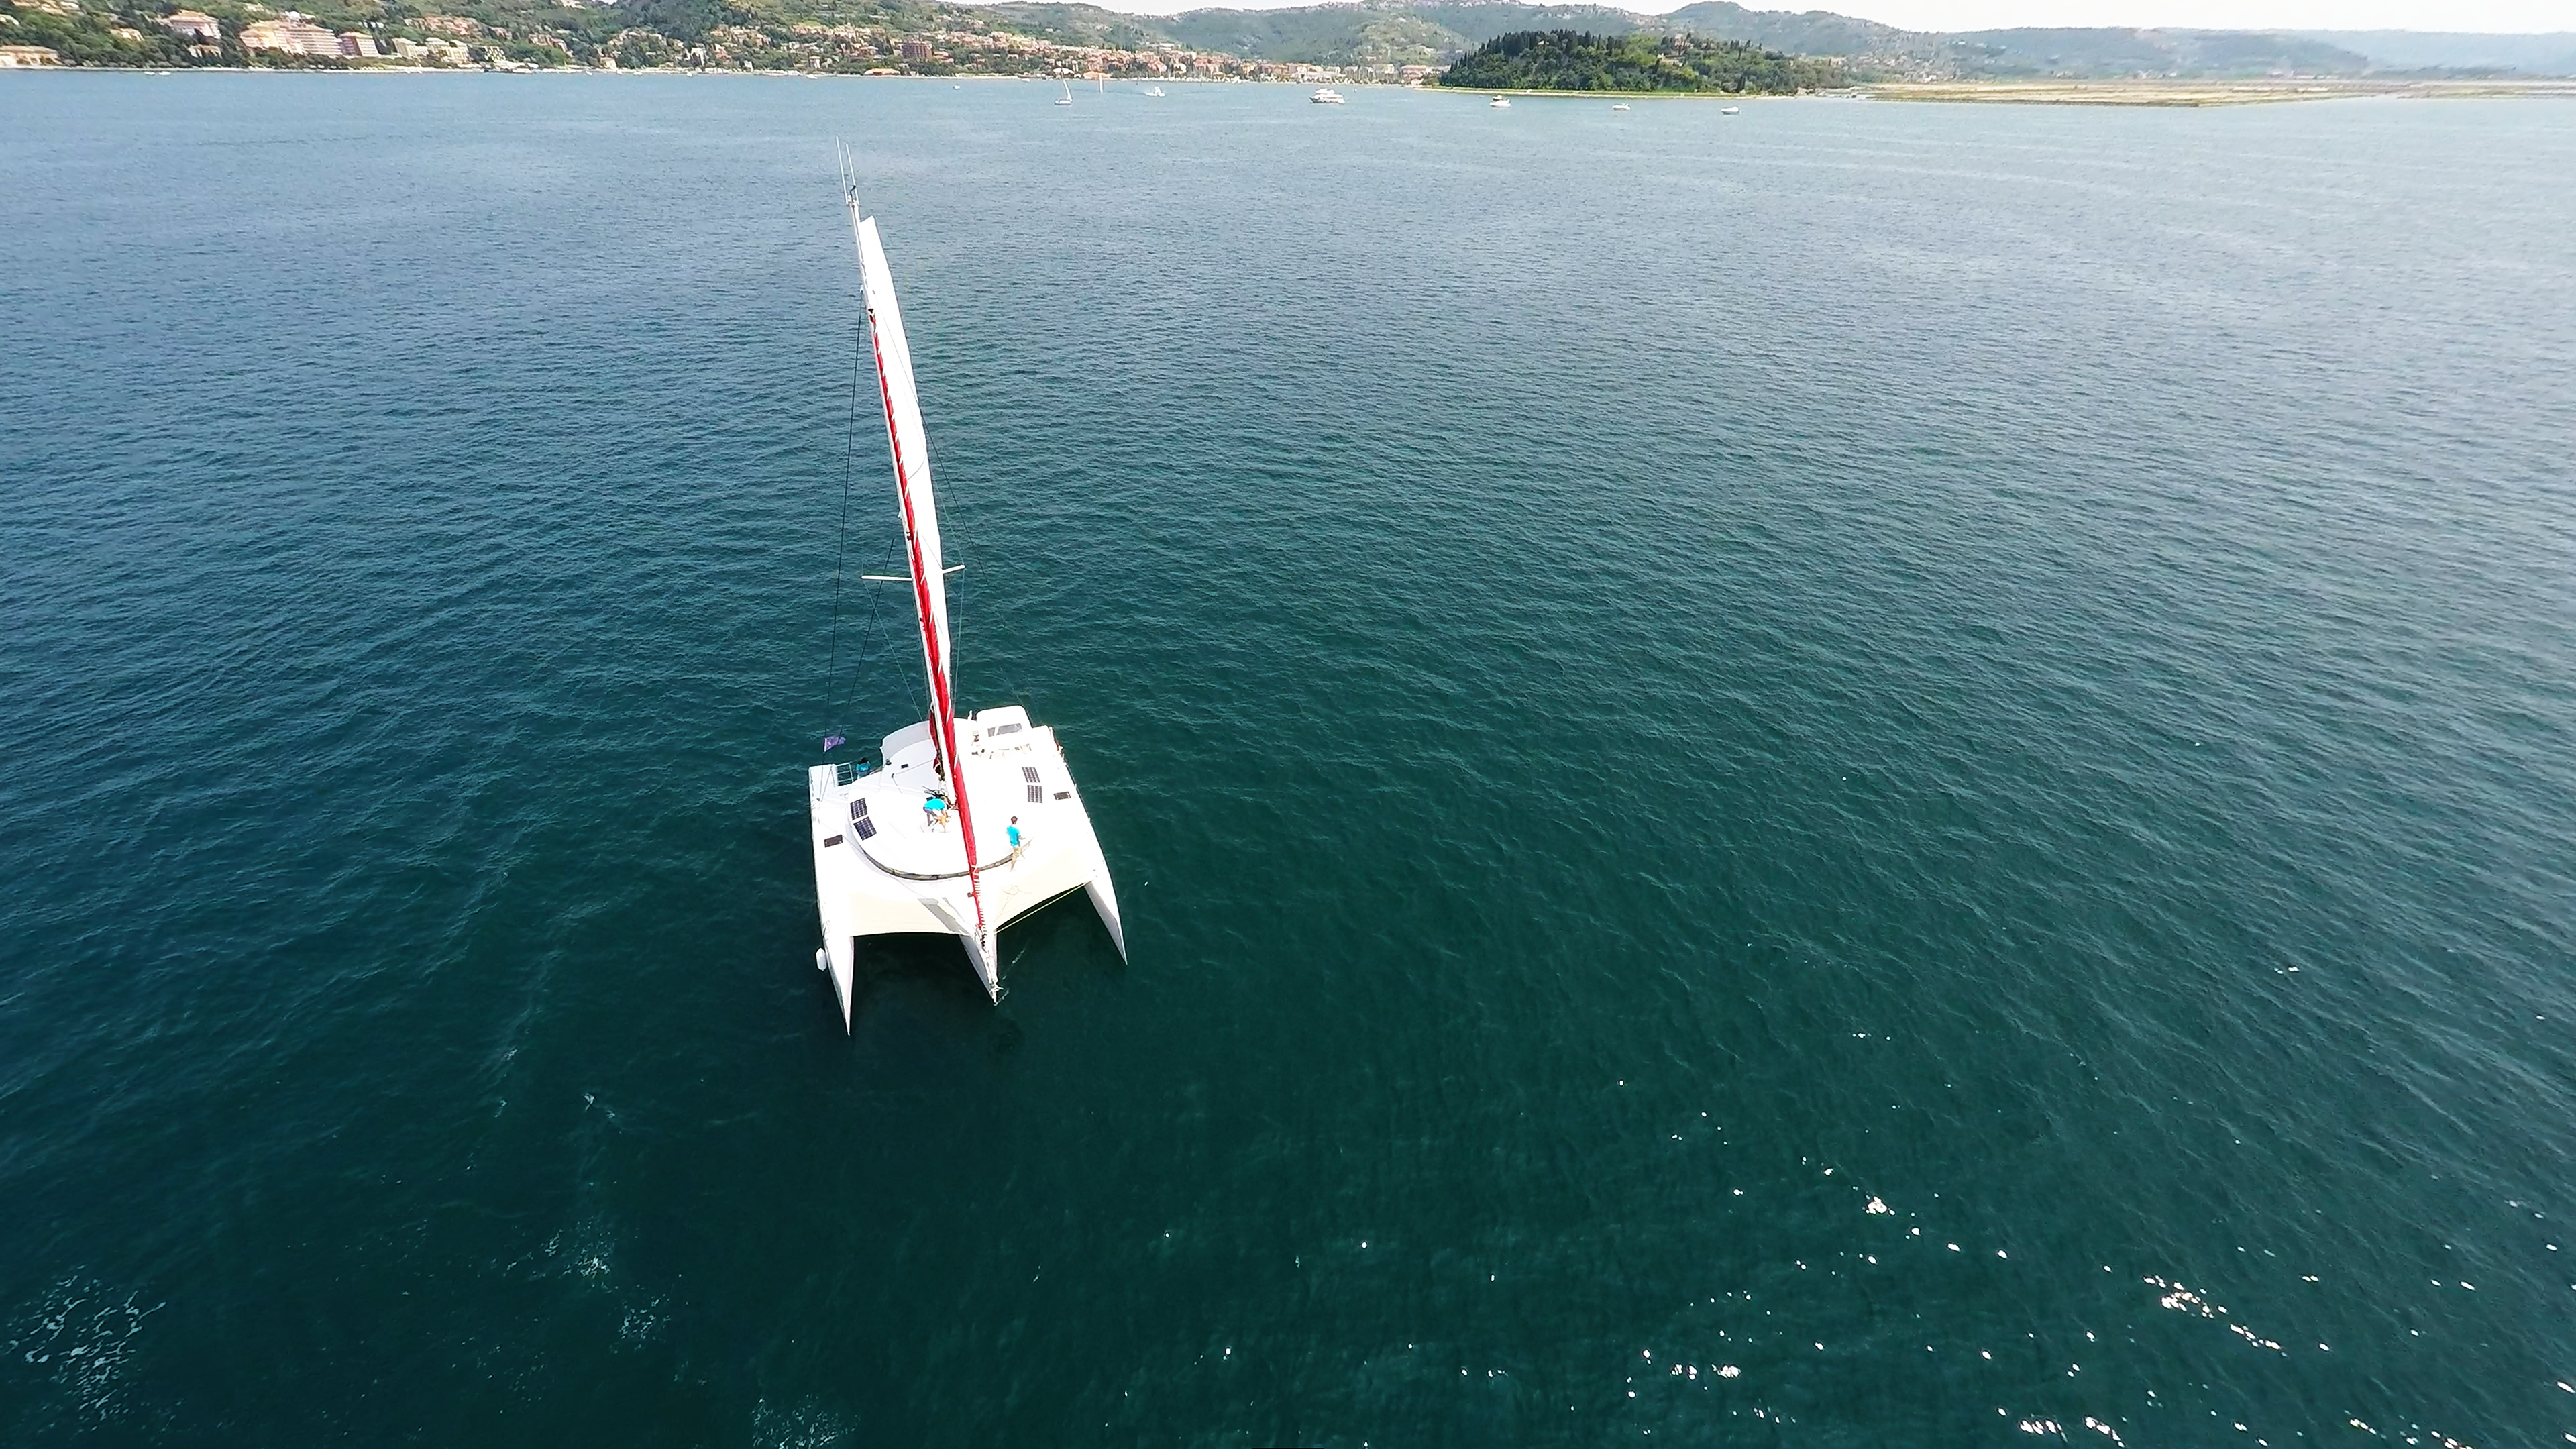 trimaran from air crew in turquoise t-shirt